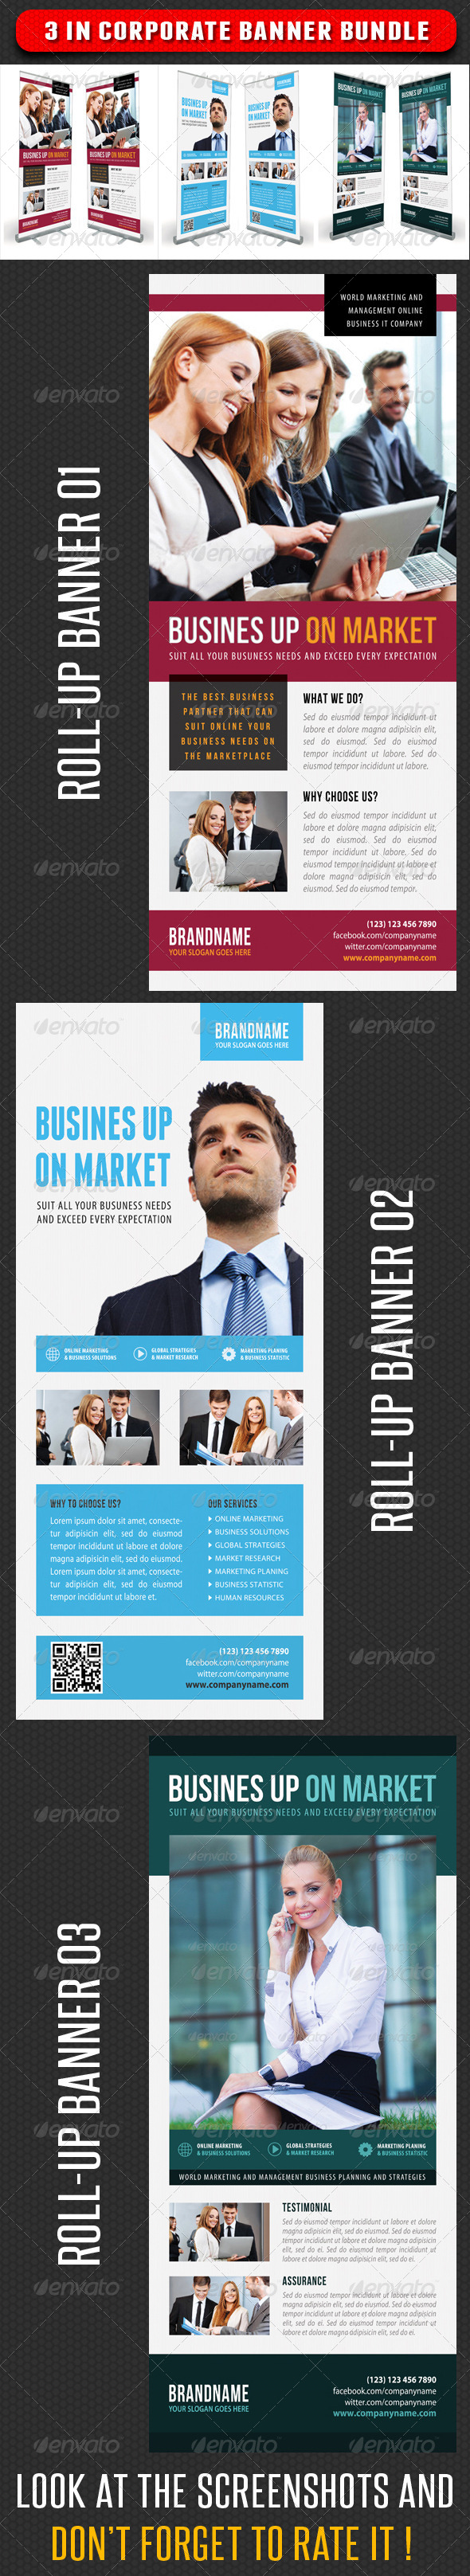 GraphicRiver 3 in 1 Corporate Rollup Banner Bunle 07 7347563